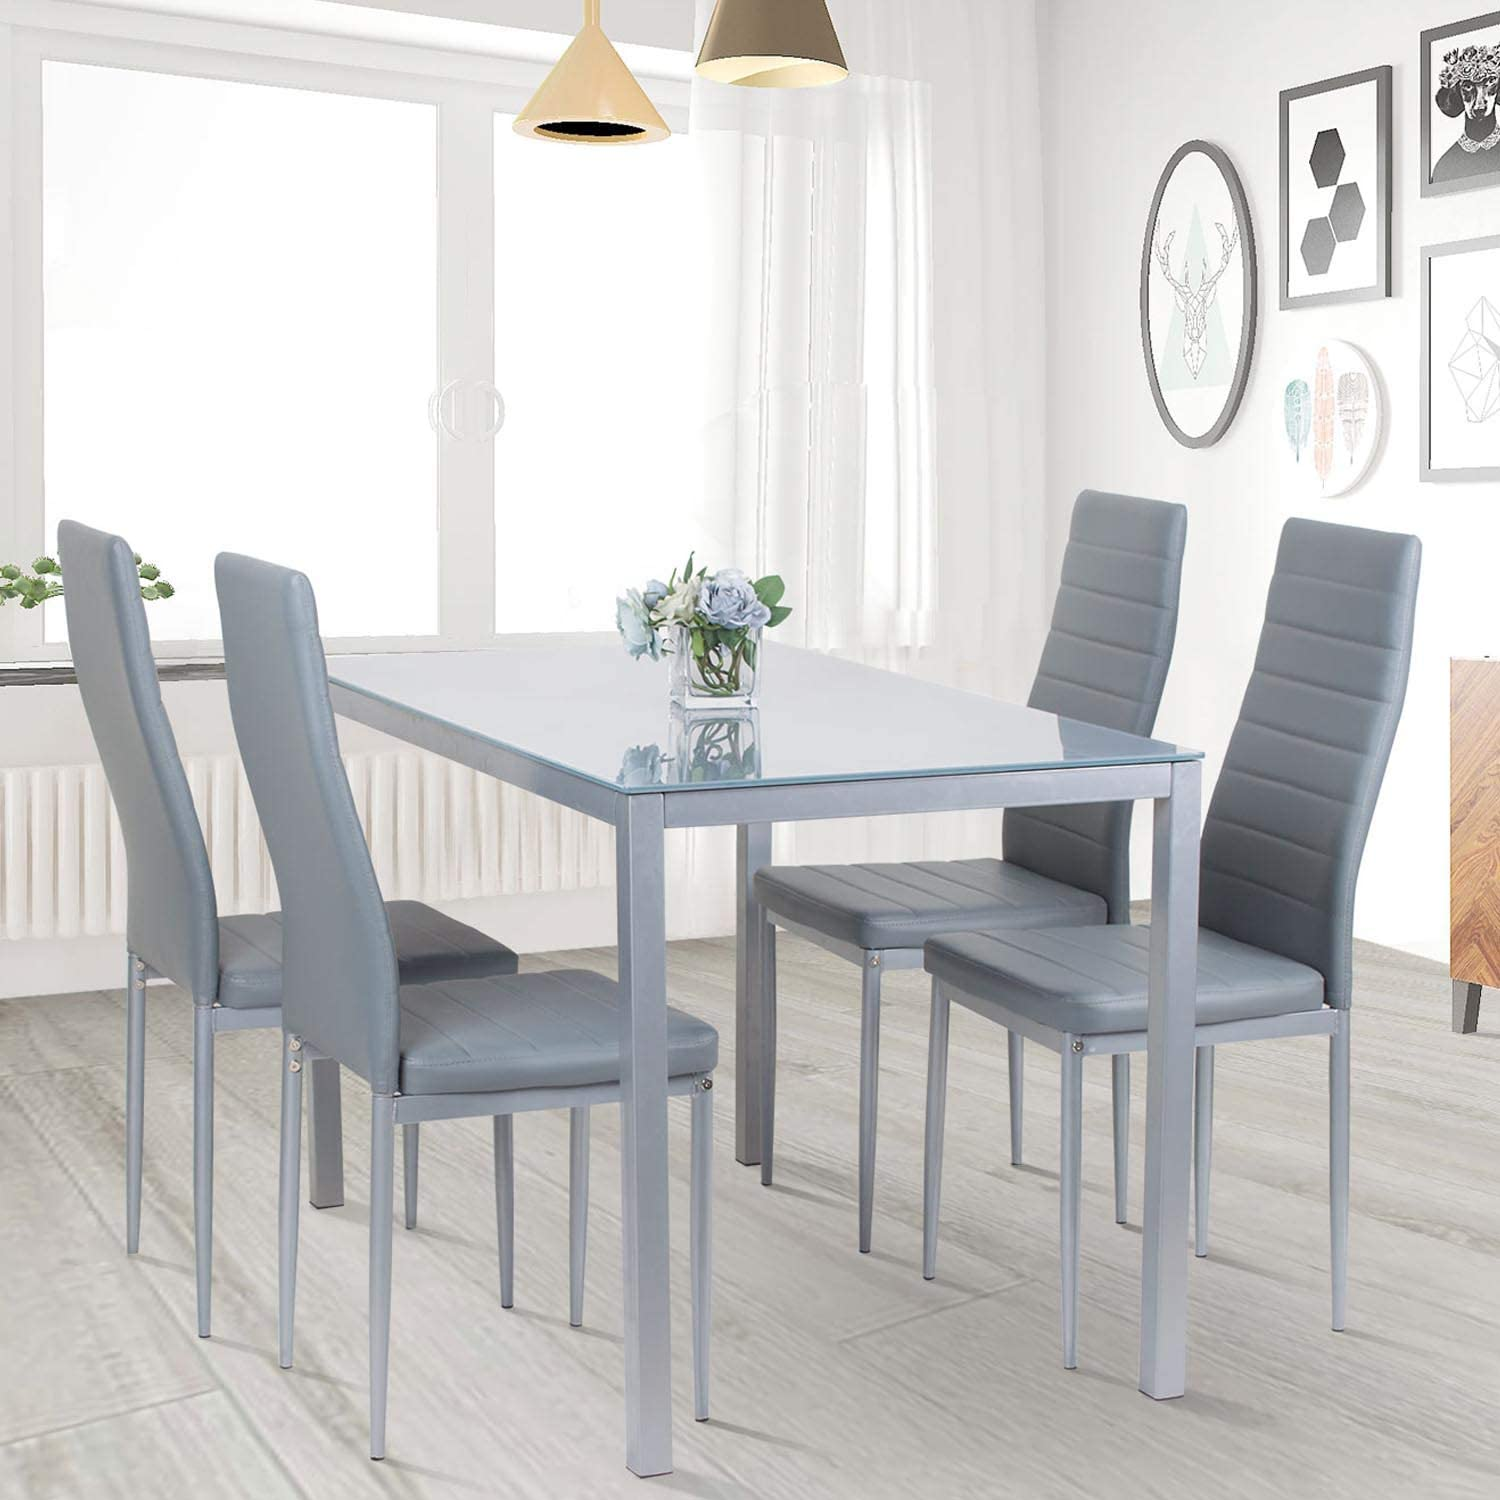 jeffordoutlet Dining Table and Chairs Set of 10 Chairs, Modern Home Kitchen  Living Room Furniture